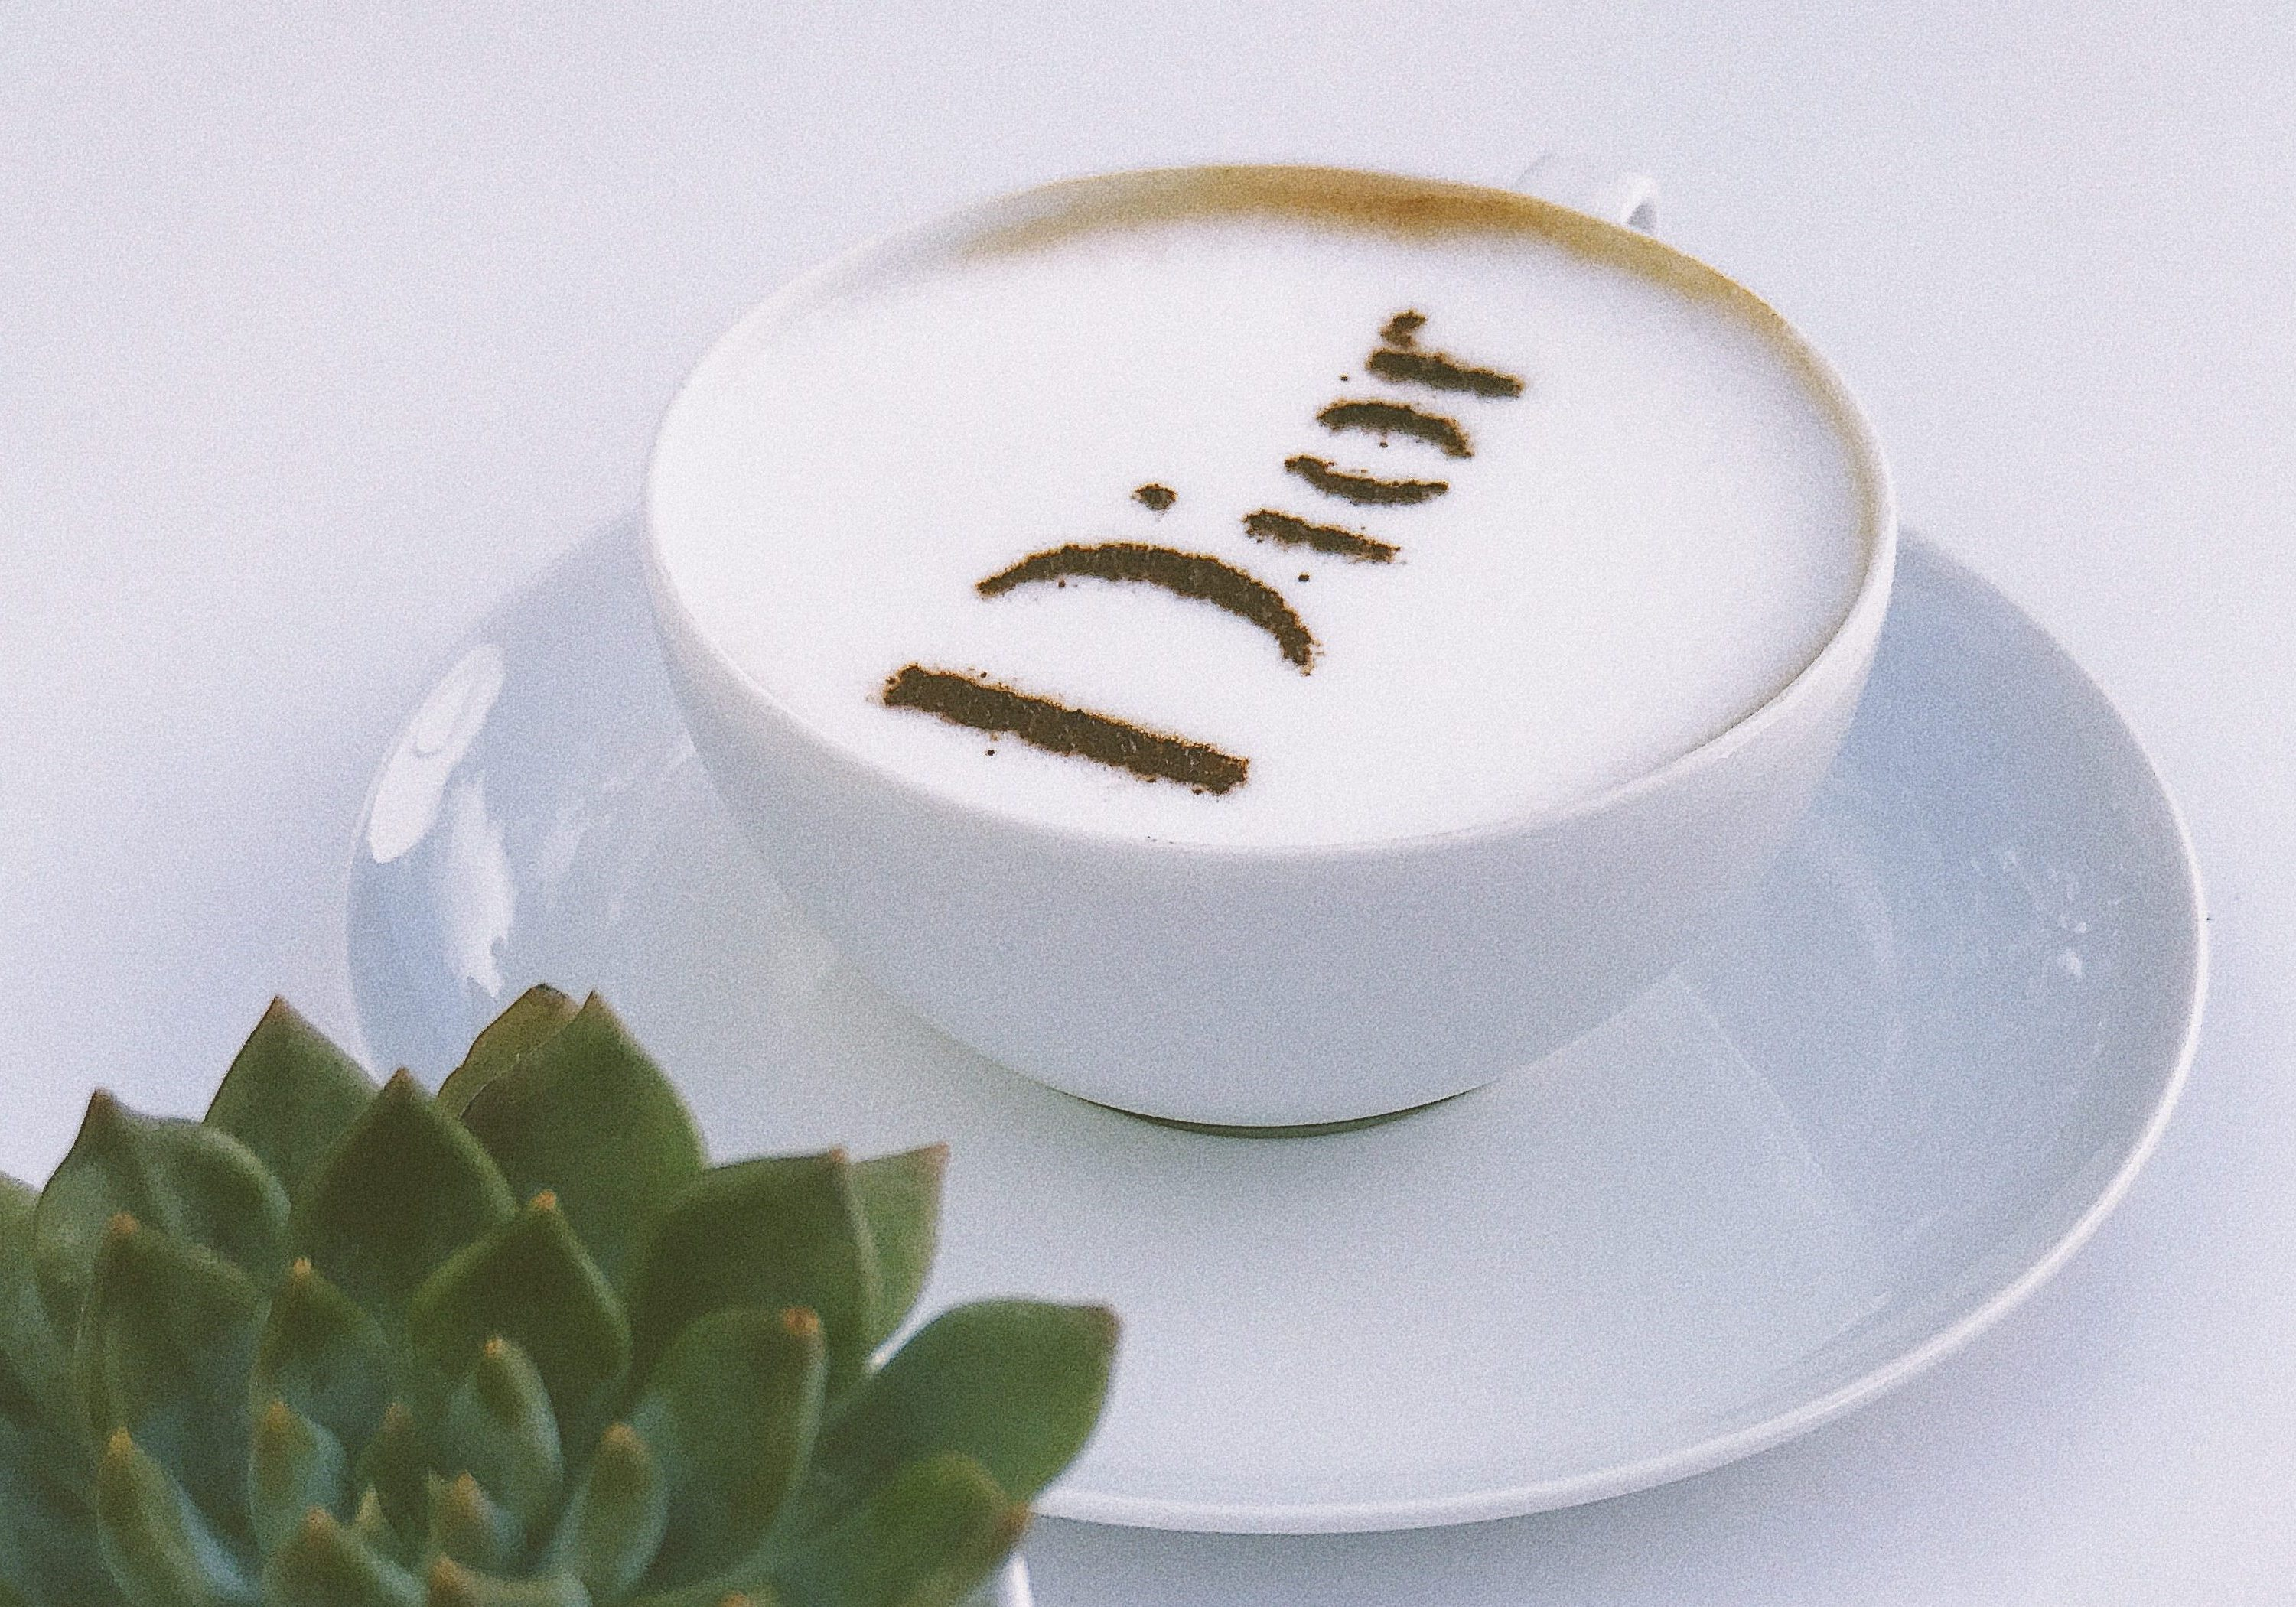 Dior, fashion, kaffe, latte. latte art. (Foto: Unsplash)